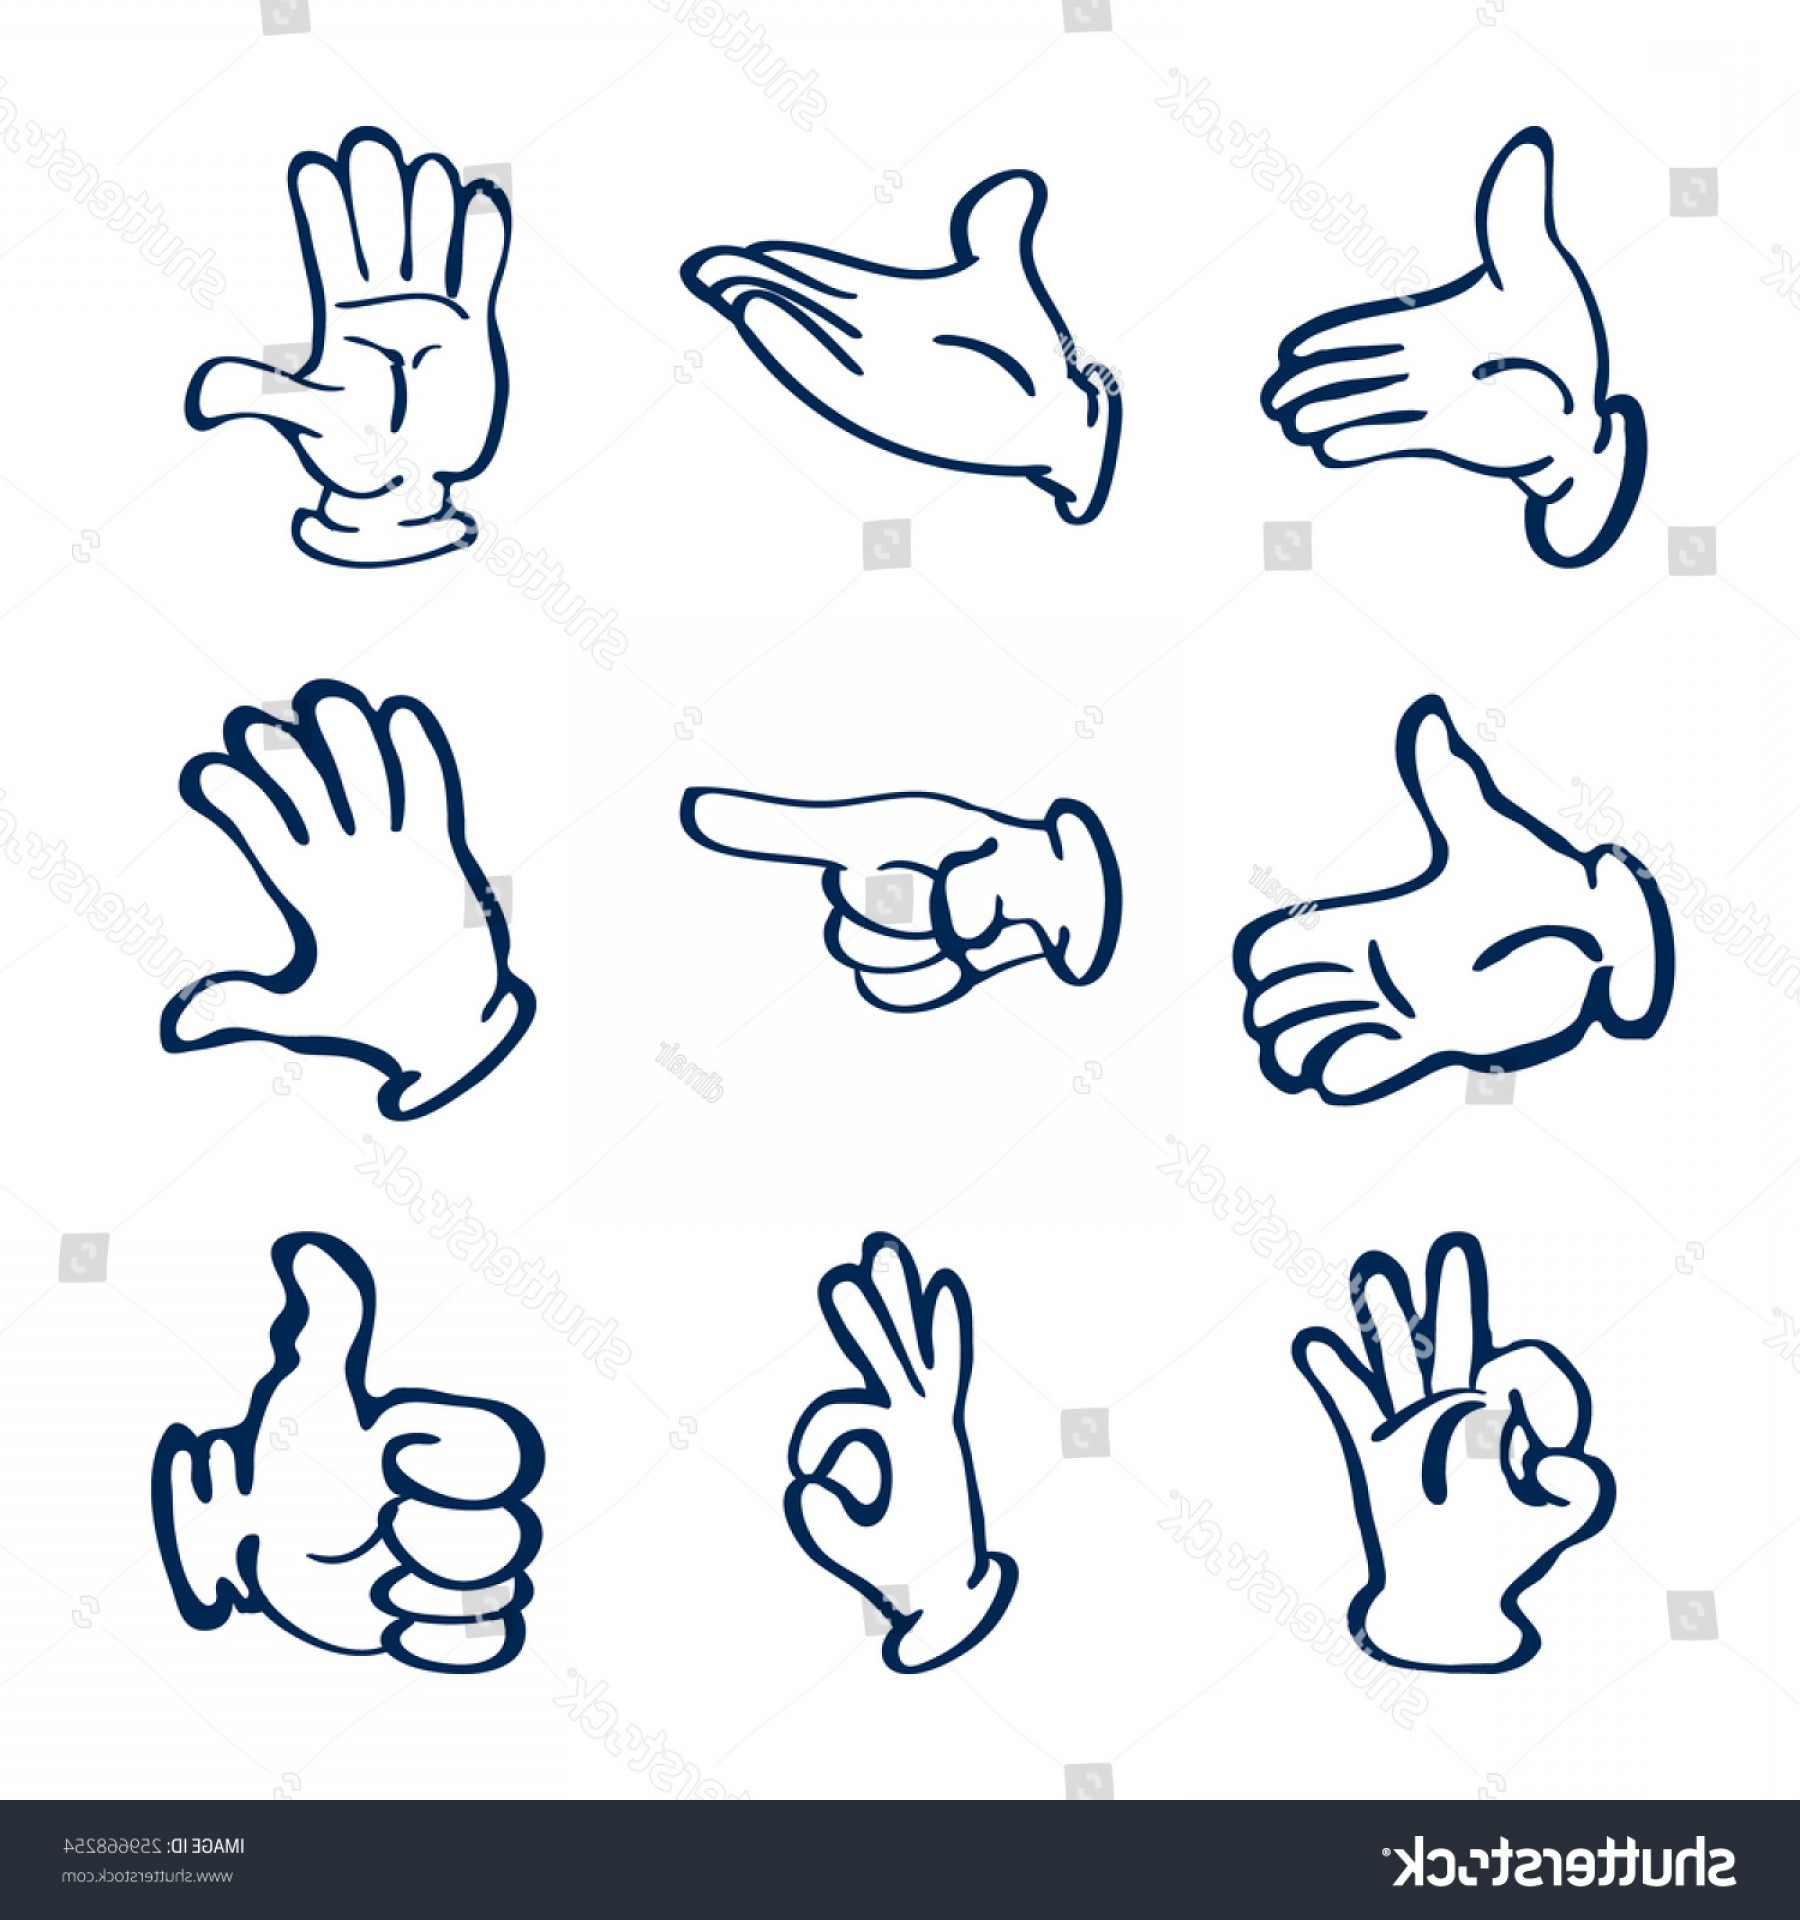 Hand Vector Clip Art: Cartoon Gloved Hands Vector Clip Art